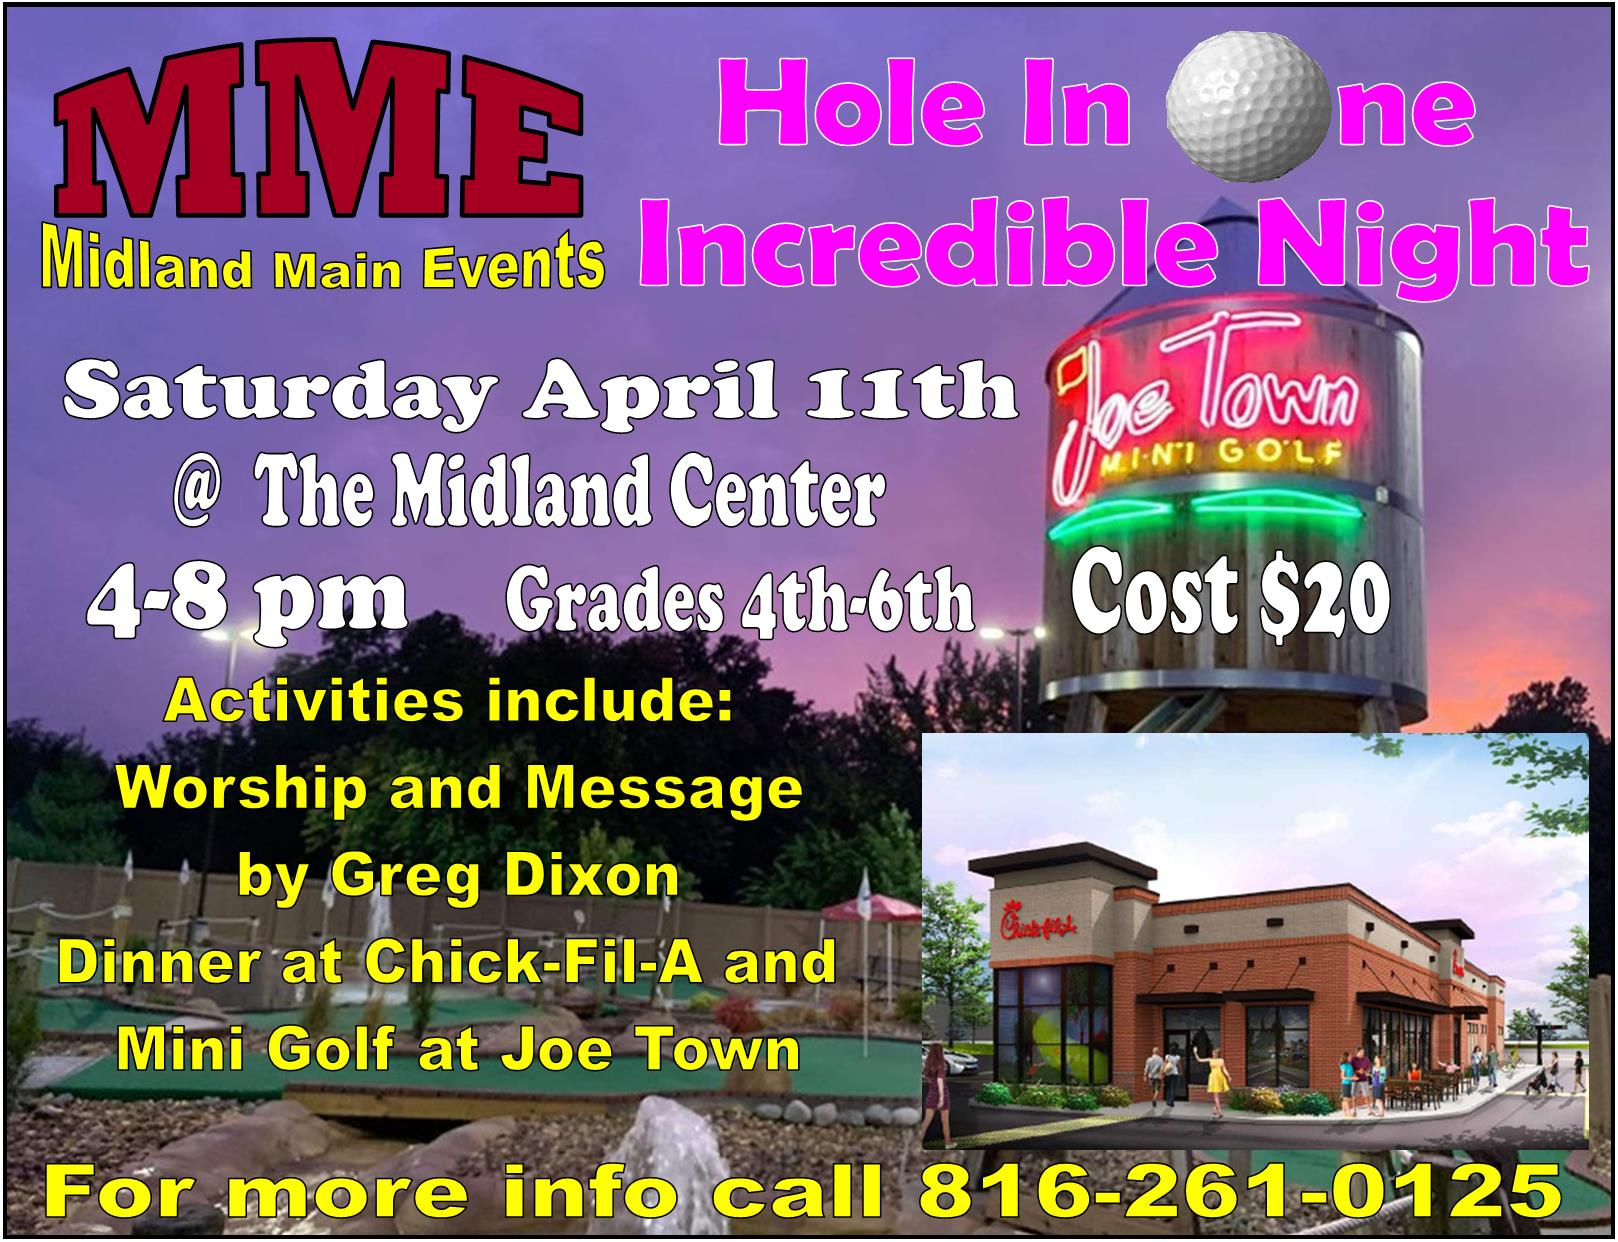 2020-04-11 Hole in One